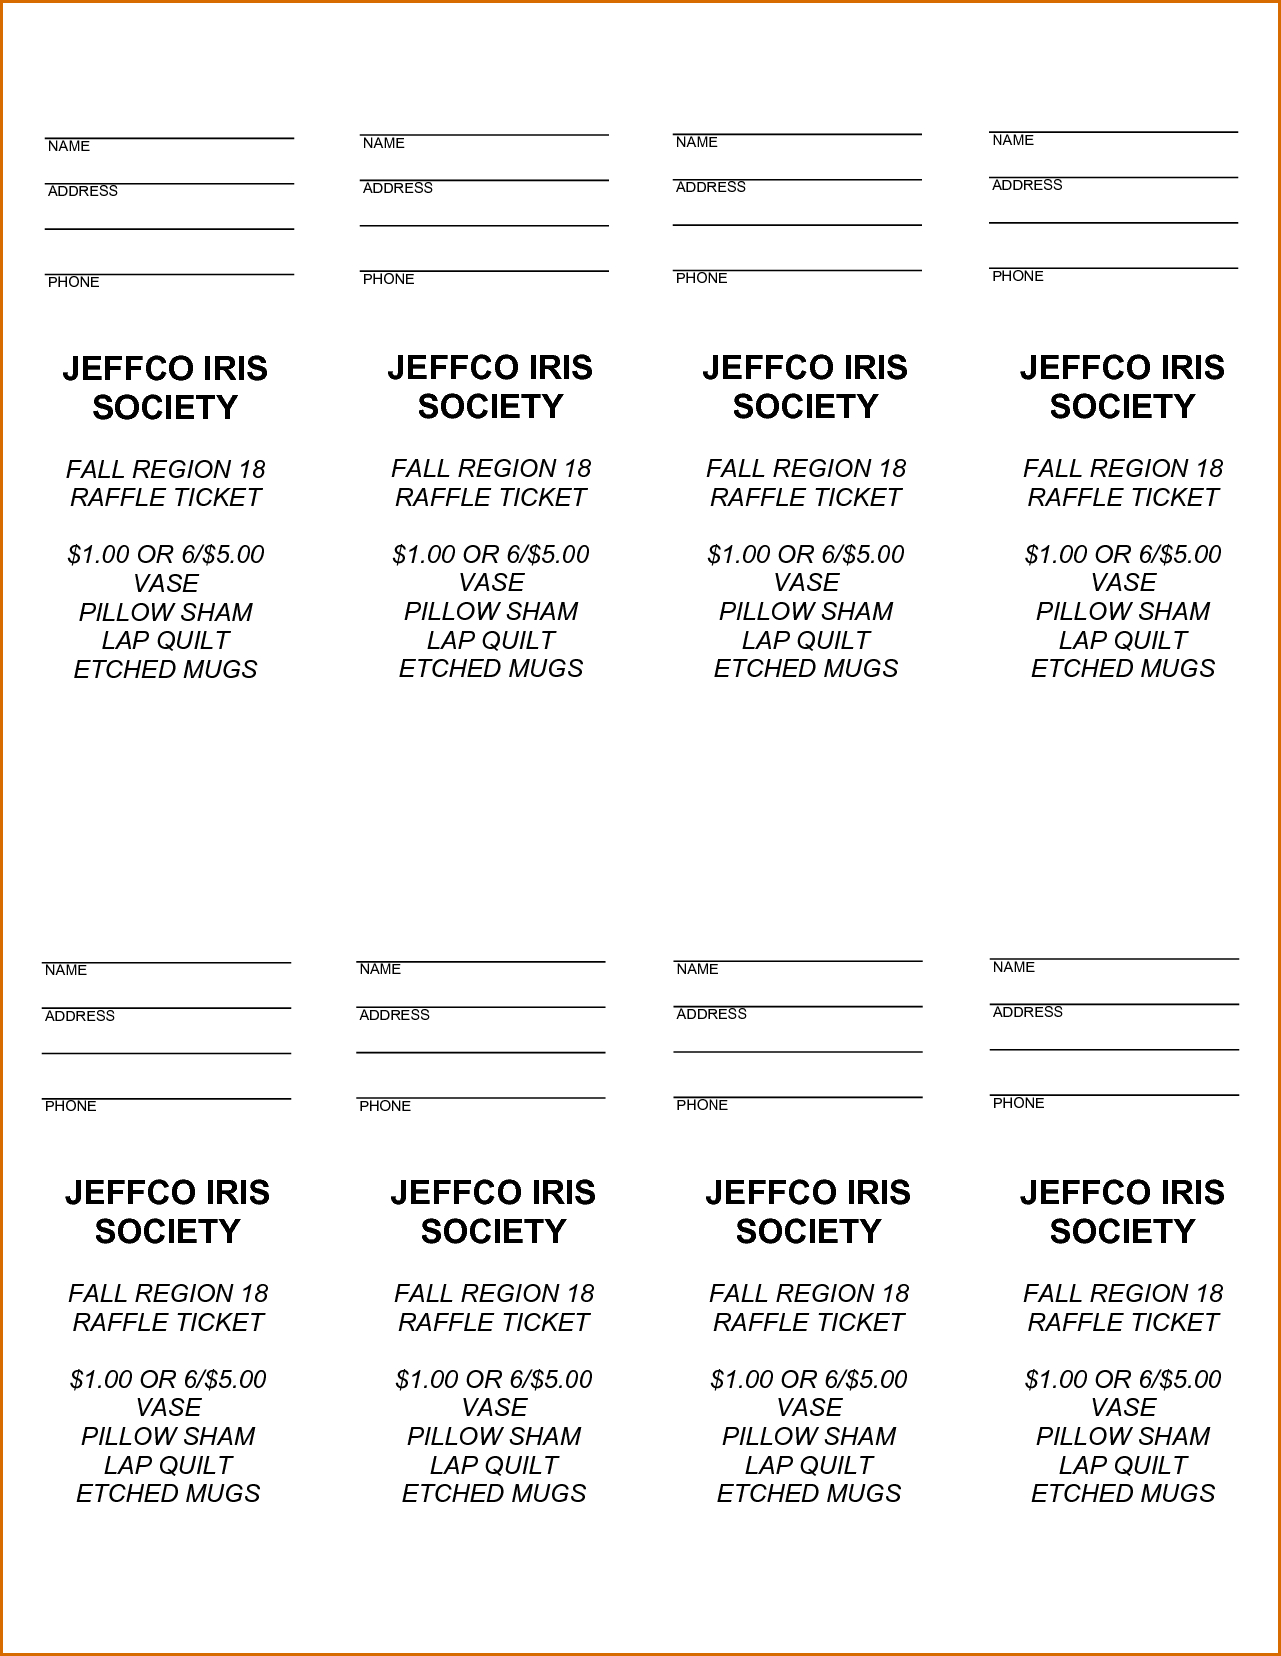 Free Printable Raffle Tickets - Free Printable Raffle Ticket - Free Printable Raffle Ticket Template